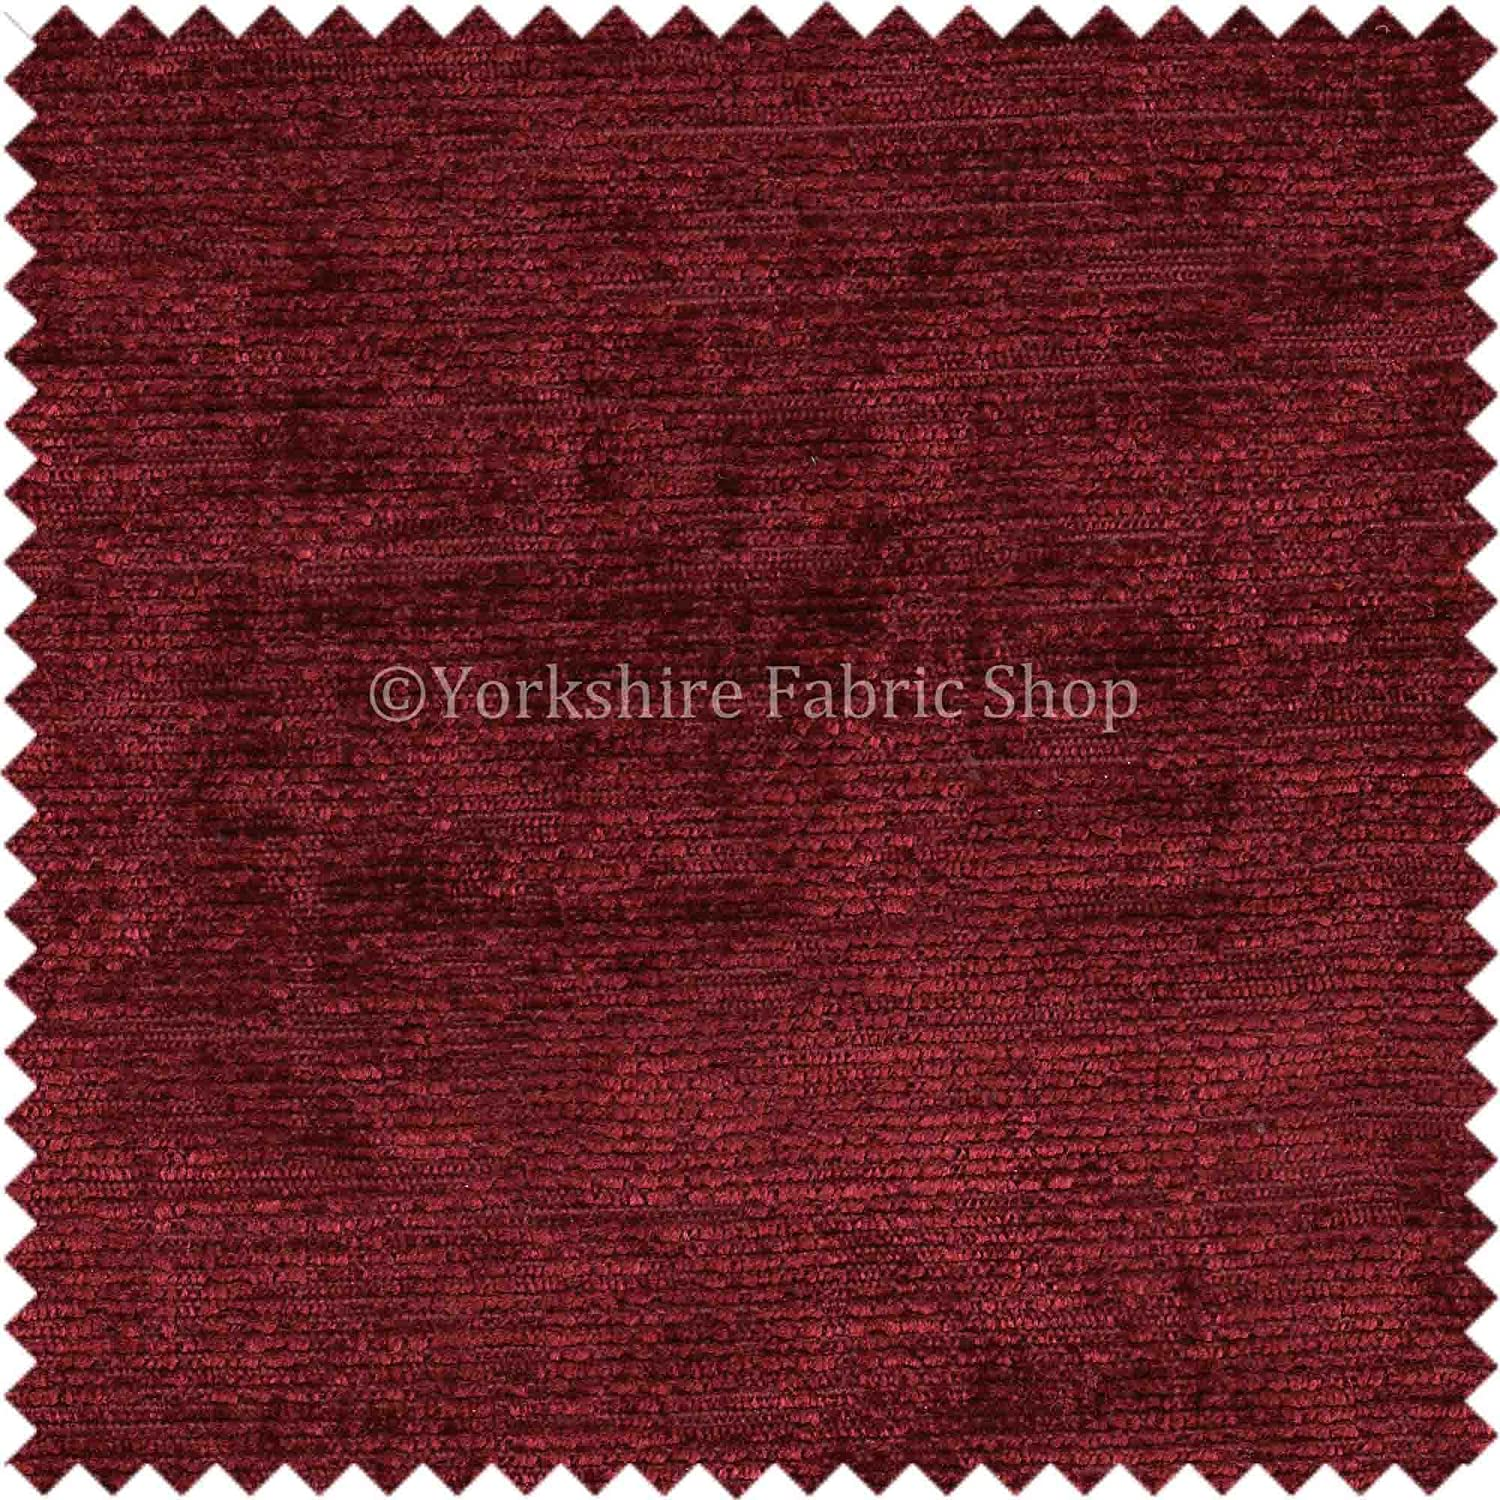 PINK CURTAIN CHENILLE SOFT SHIMMERING UPHOLSTERY SOFA FABRIC MATERIAL